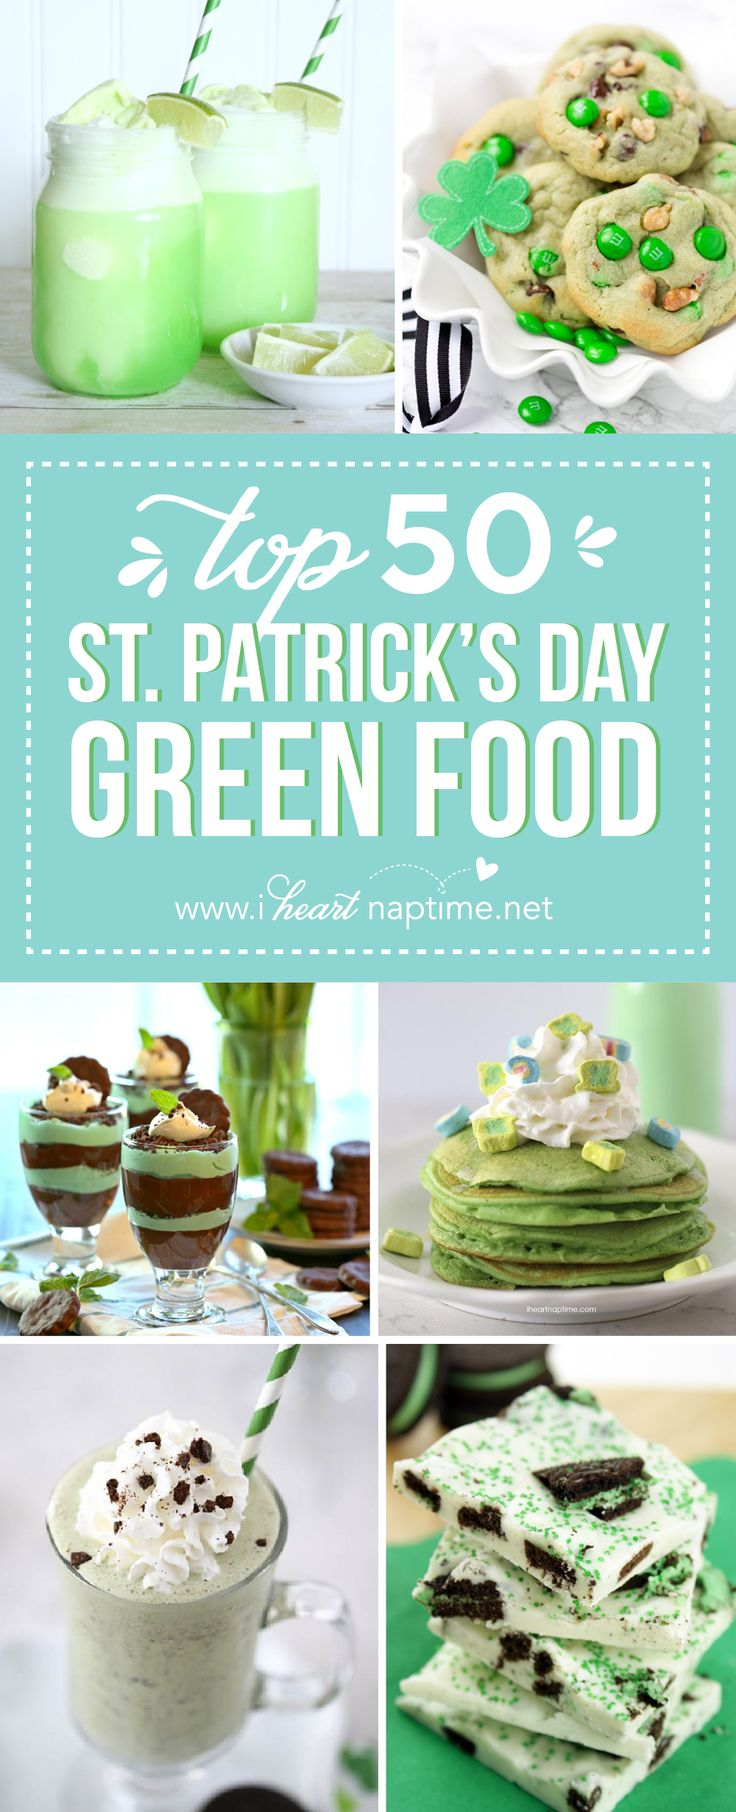 Top 50 St. Patrick's Day Green Food - have fun with St. Patrick's Day and surprise your family and friends with these fun, festive green recipes!